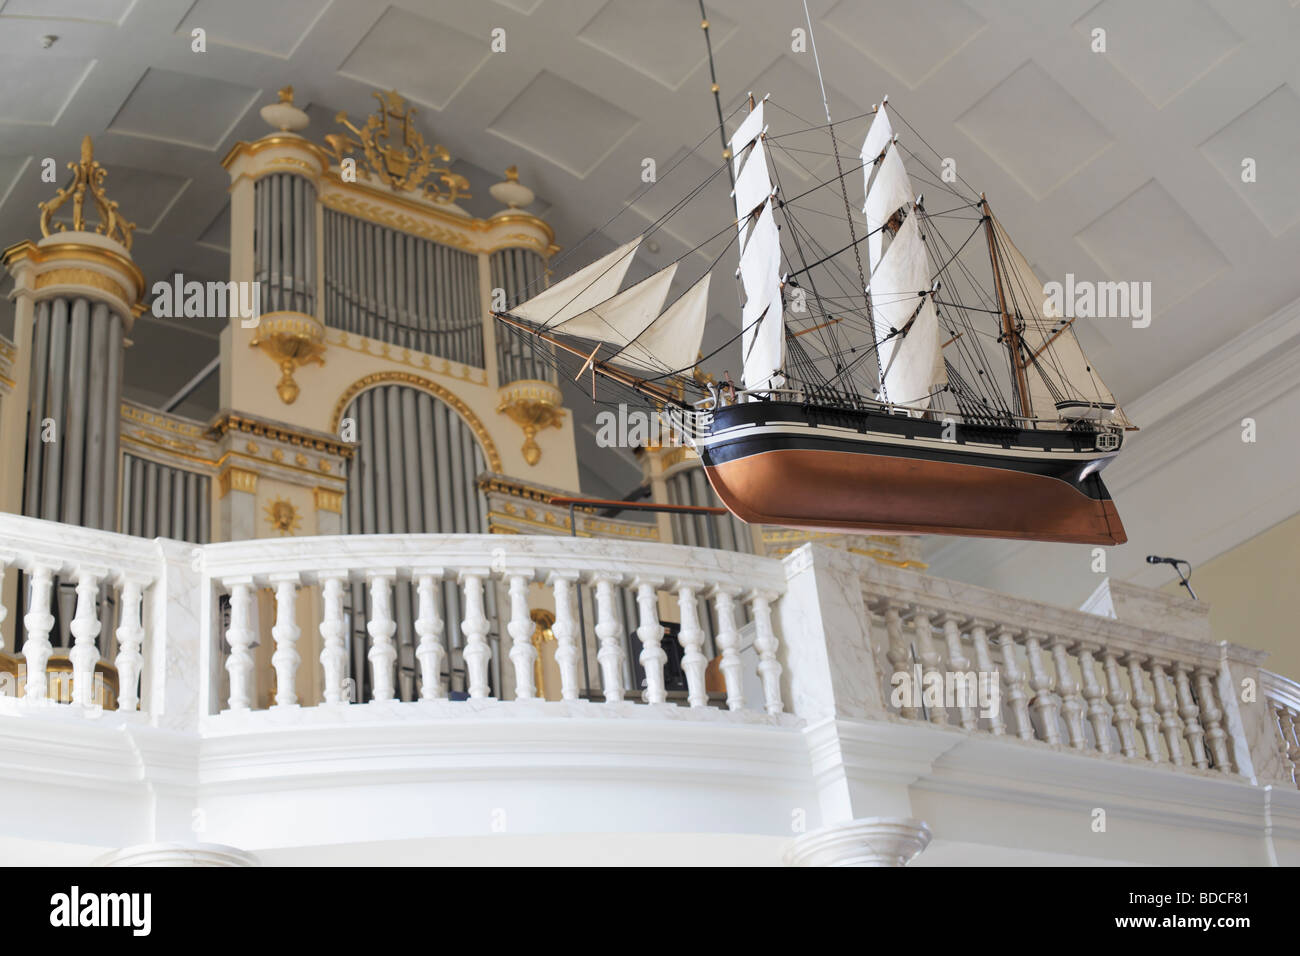 Interior view of Oulu cathedral Finland - Stock Image